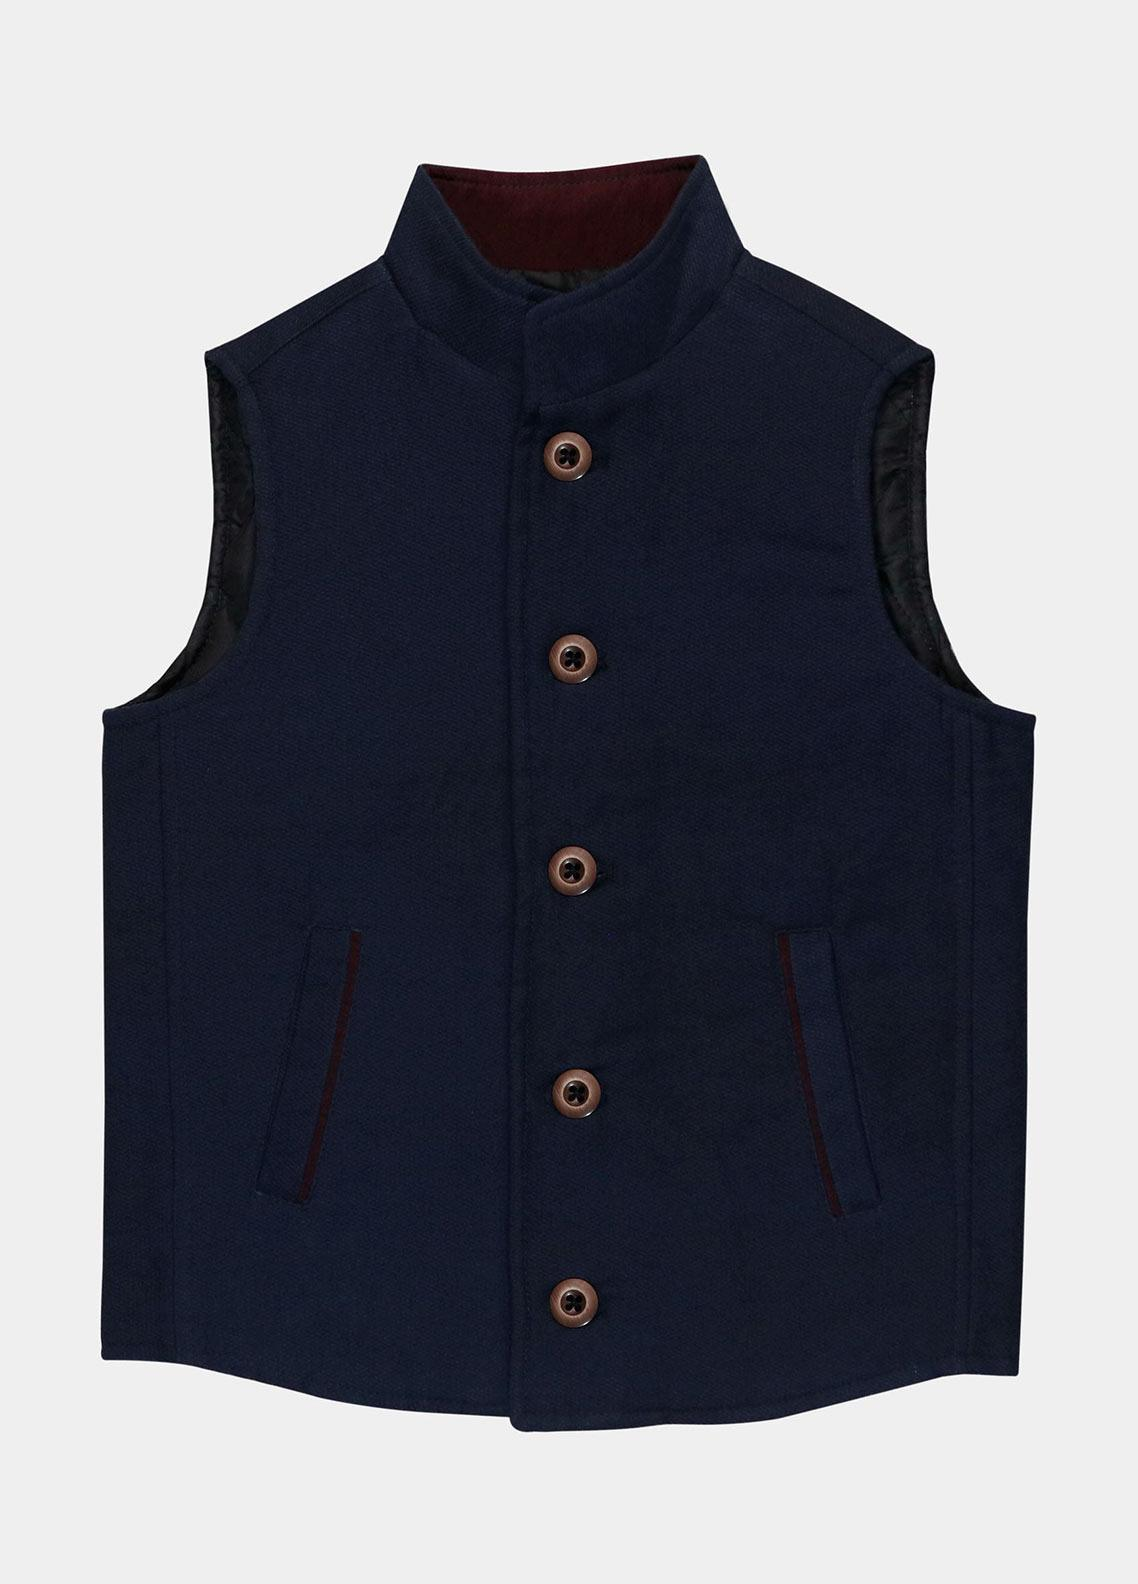 Brumano Polyester Casual Boys Jackets -  BM20JJ Navy Structured Quilted Casual Sleeveless Vest - Junior